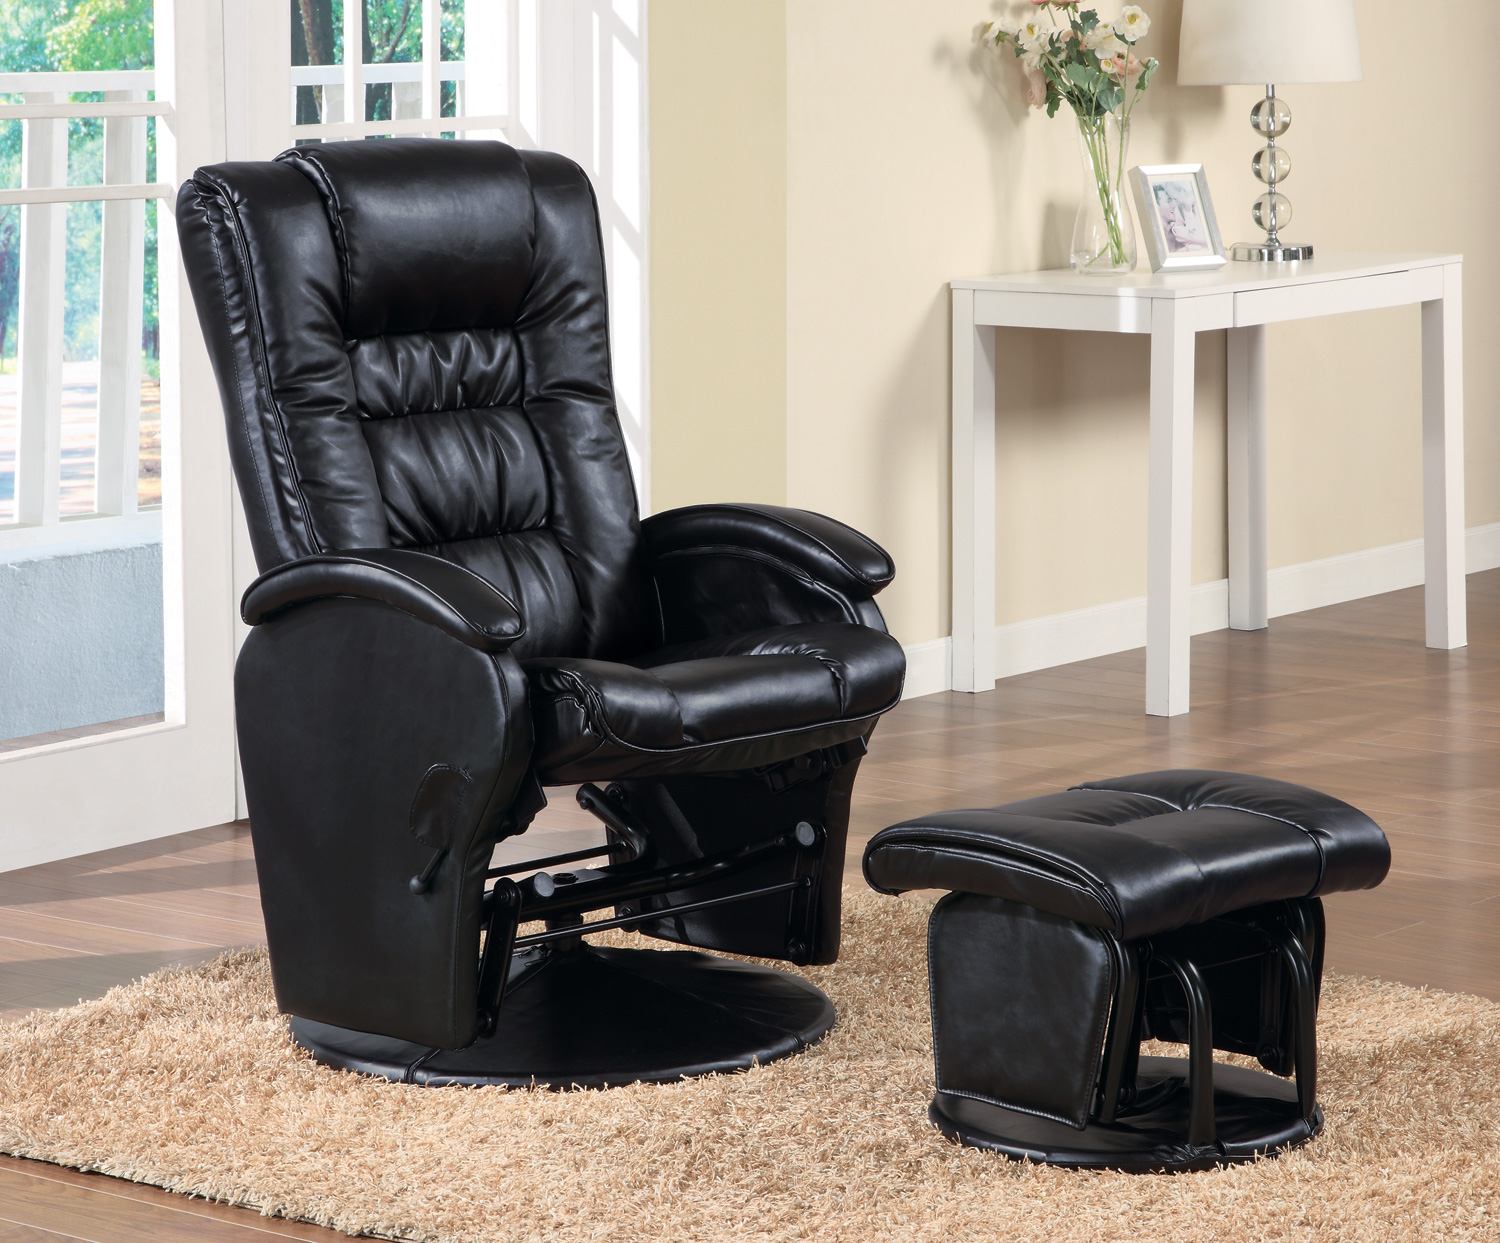 Cool Modern Style Swivel Glider Chair With Ottoman In Black Beatyapartments Chair Design Images Beatyapartmentscom